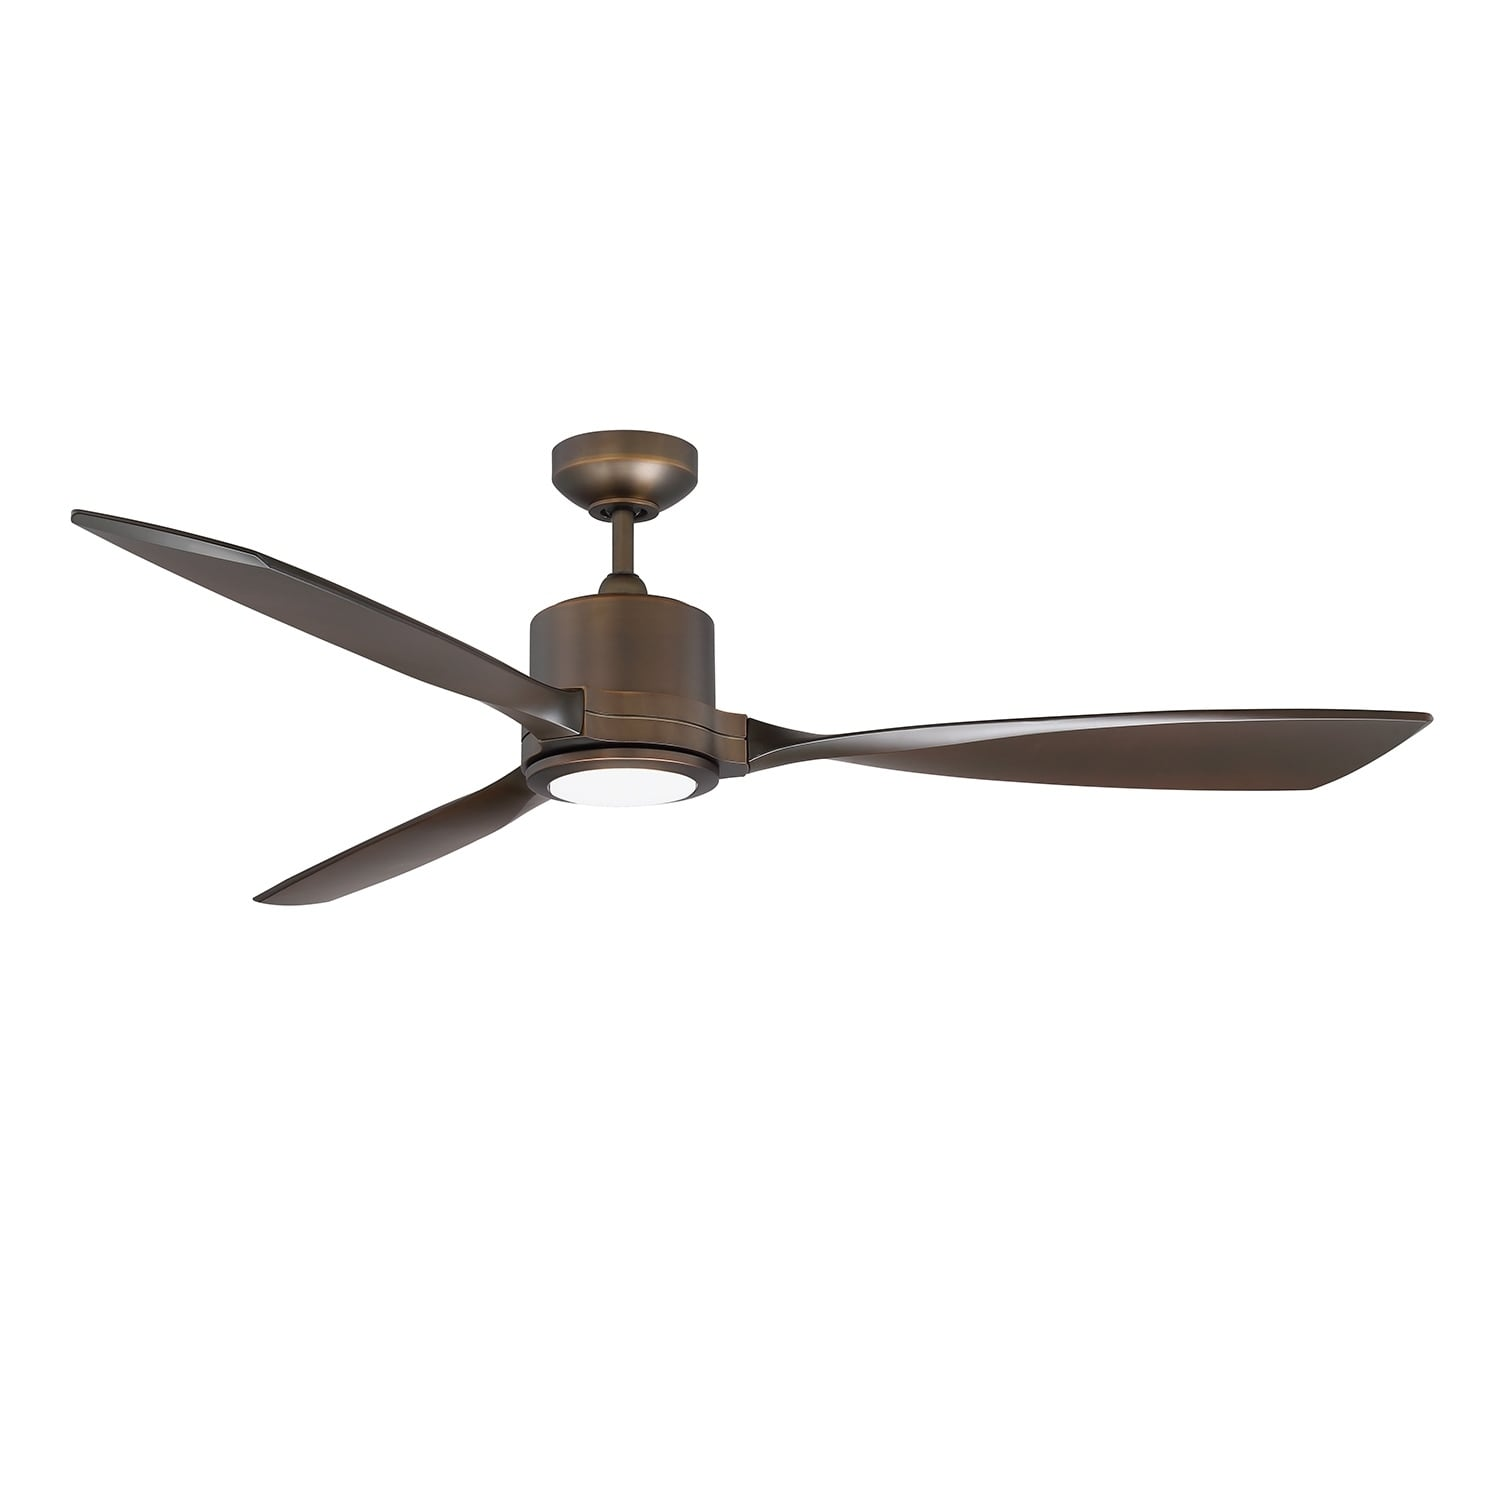 Kendal Lighting Cordova 42 In Ceiling Fan: Kendal Lighting Altair 60-inch LED Architectural Bronze